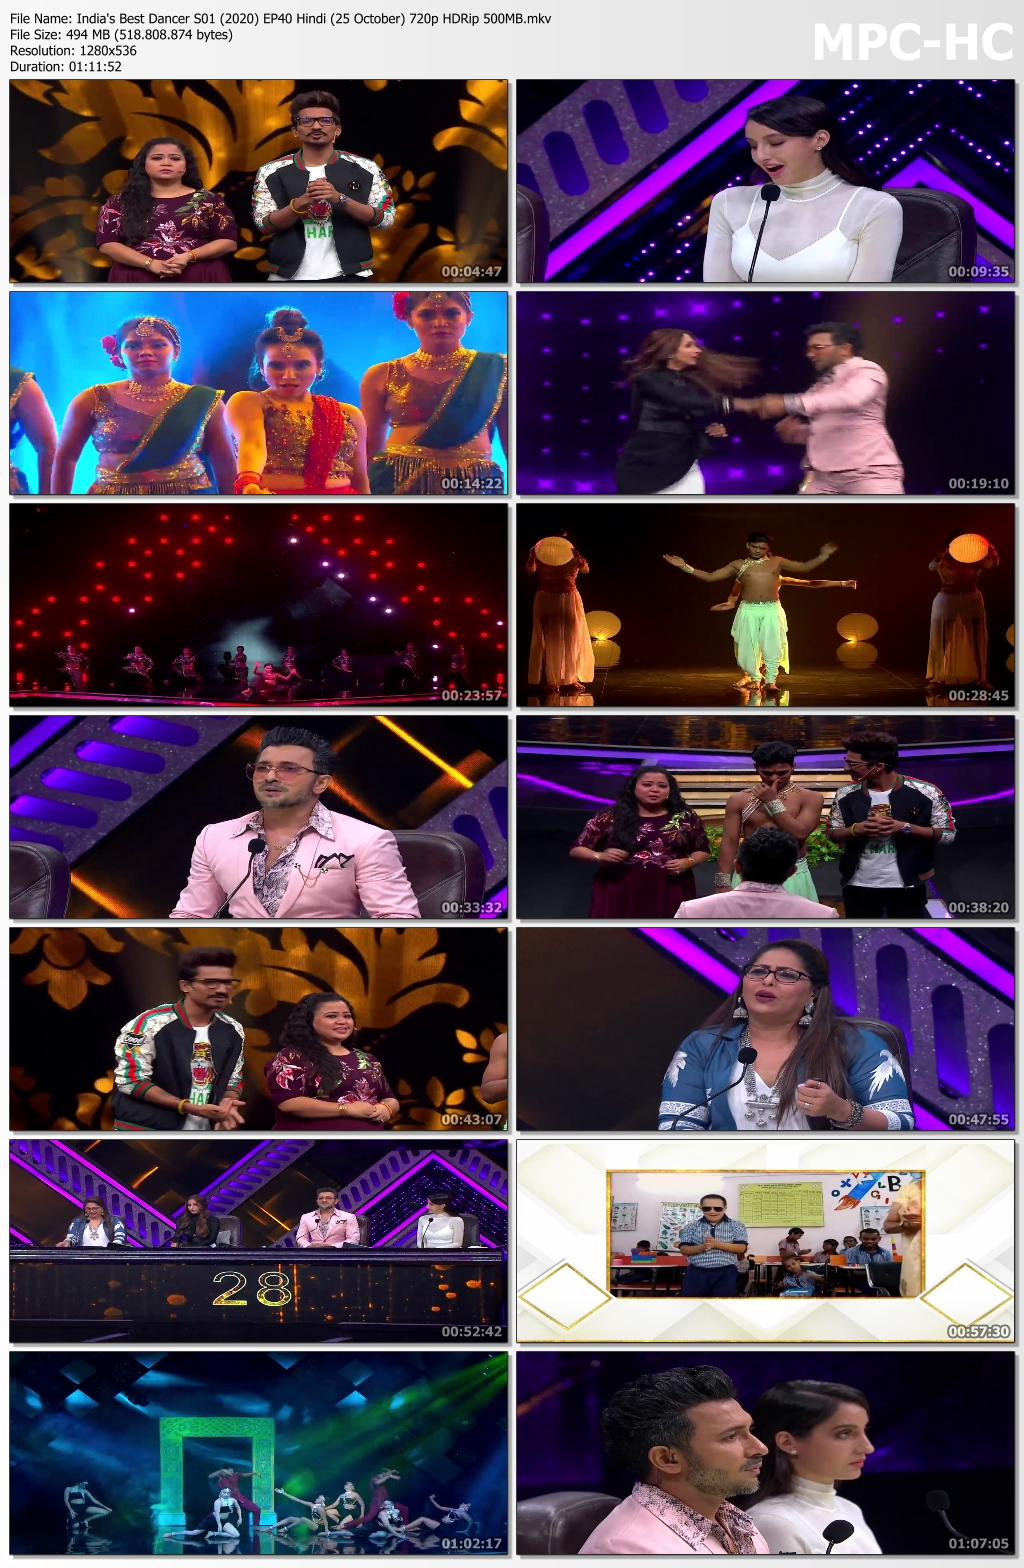 India-s-Best-Dancer-S01-2020-EP40-Hindi-25-October-720p-HDRip-500-MB-mkv-thumbs